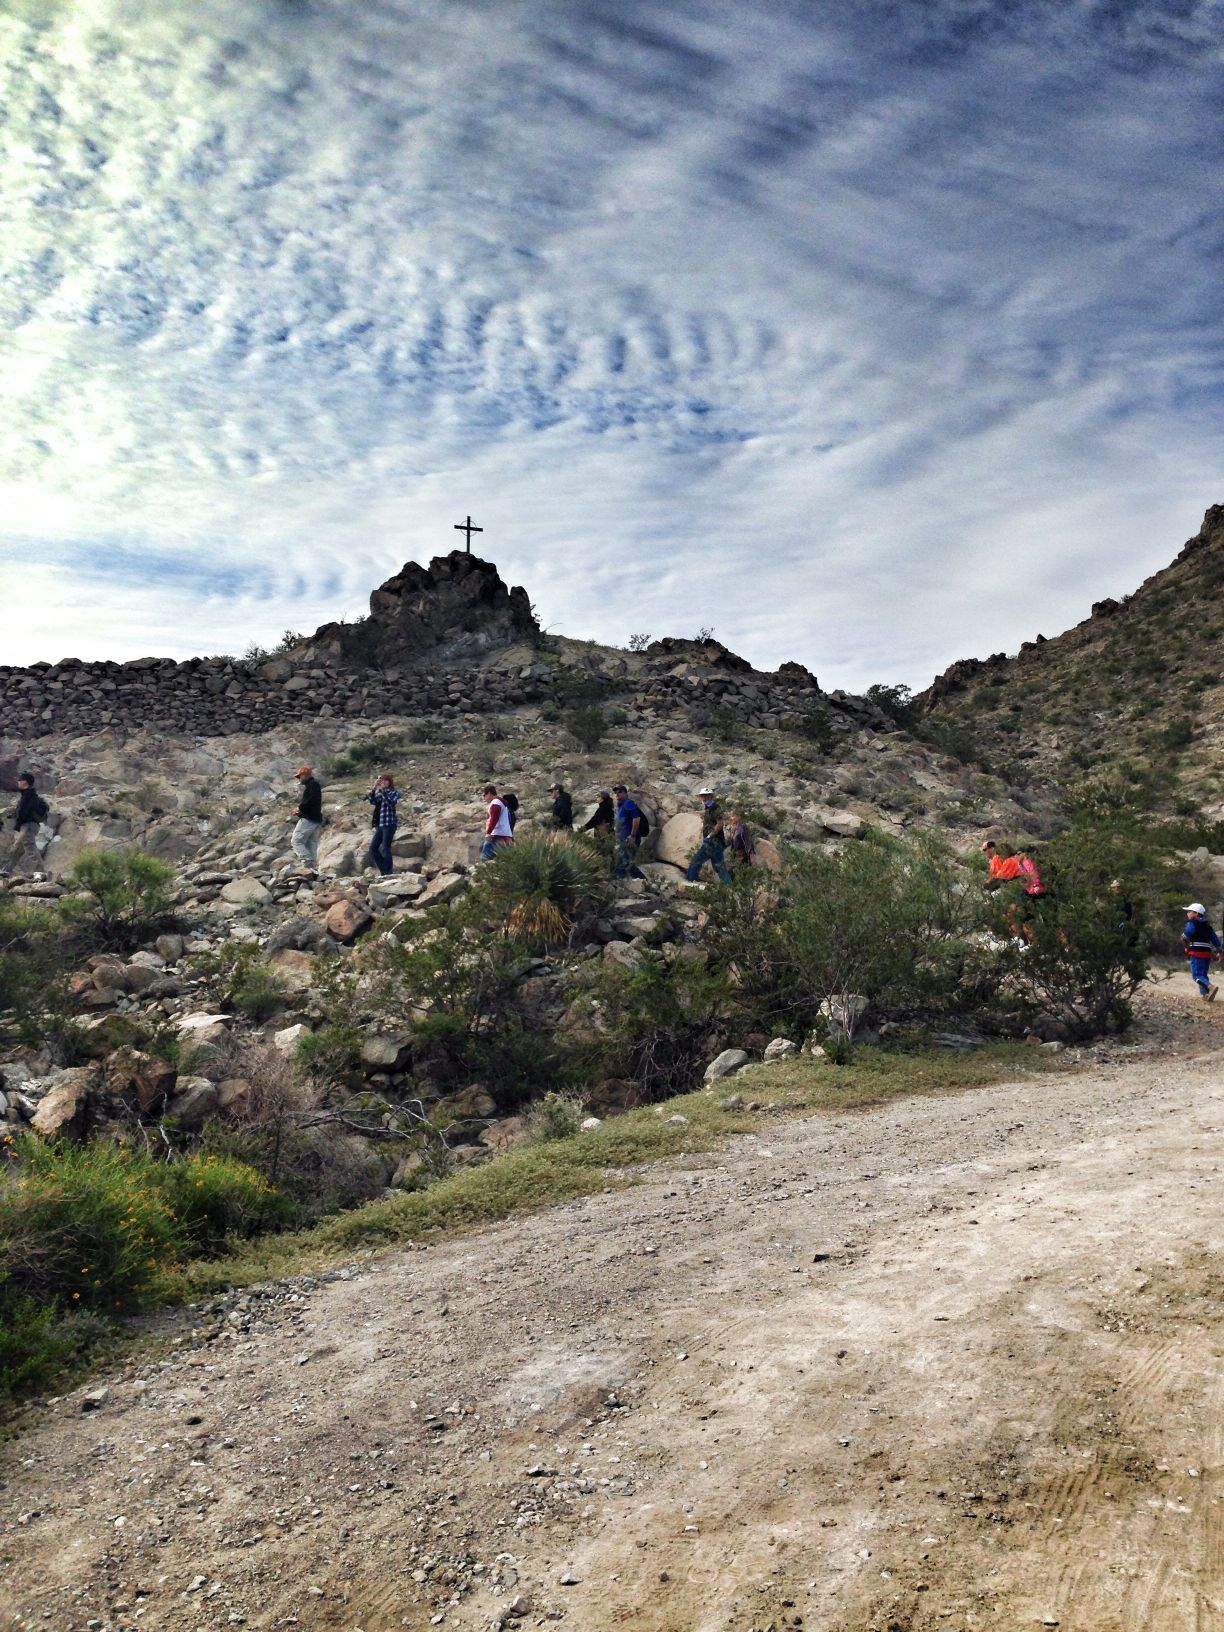 The Sun Bowl Hike, a non-religious outing, takes place Sunday, Dec. 28.